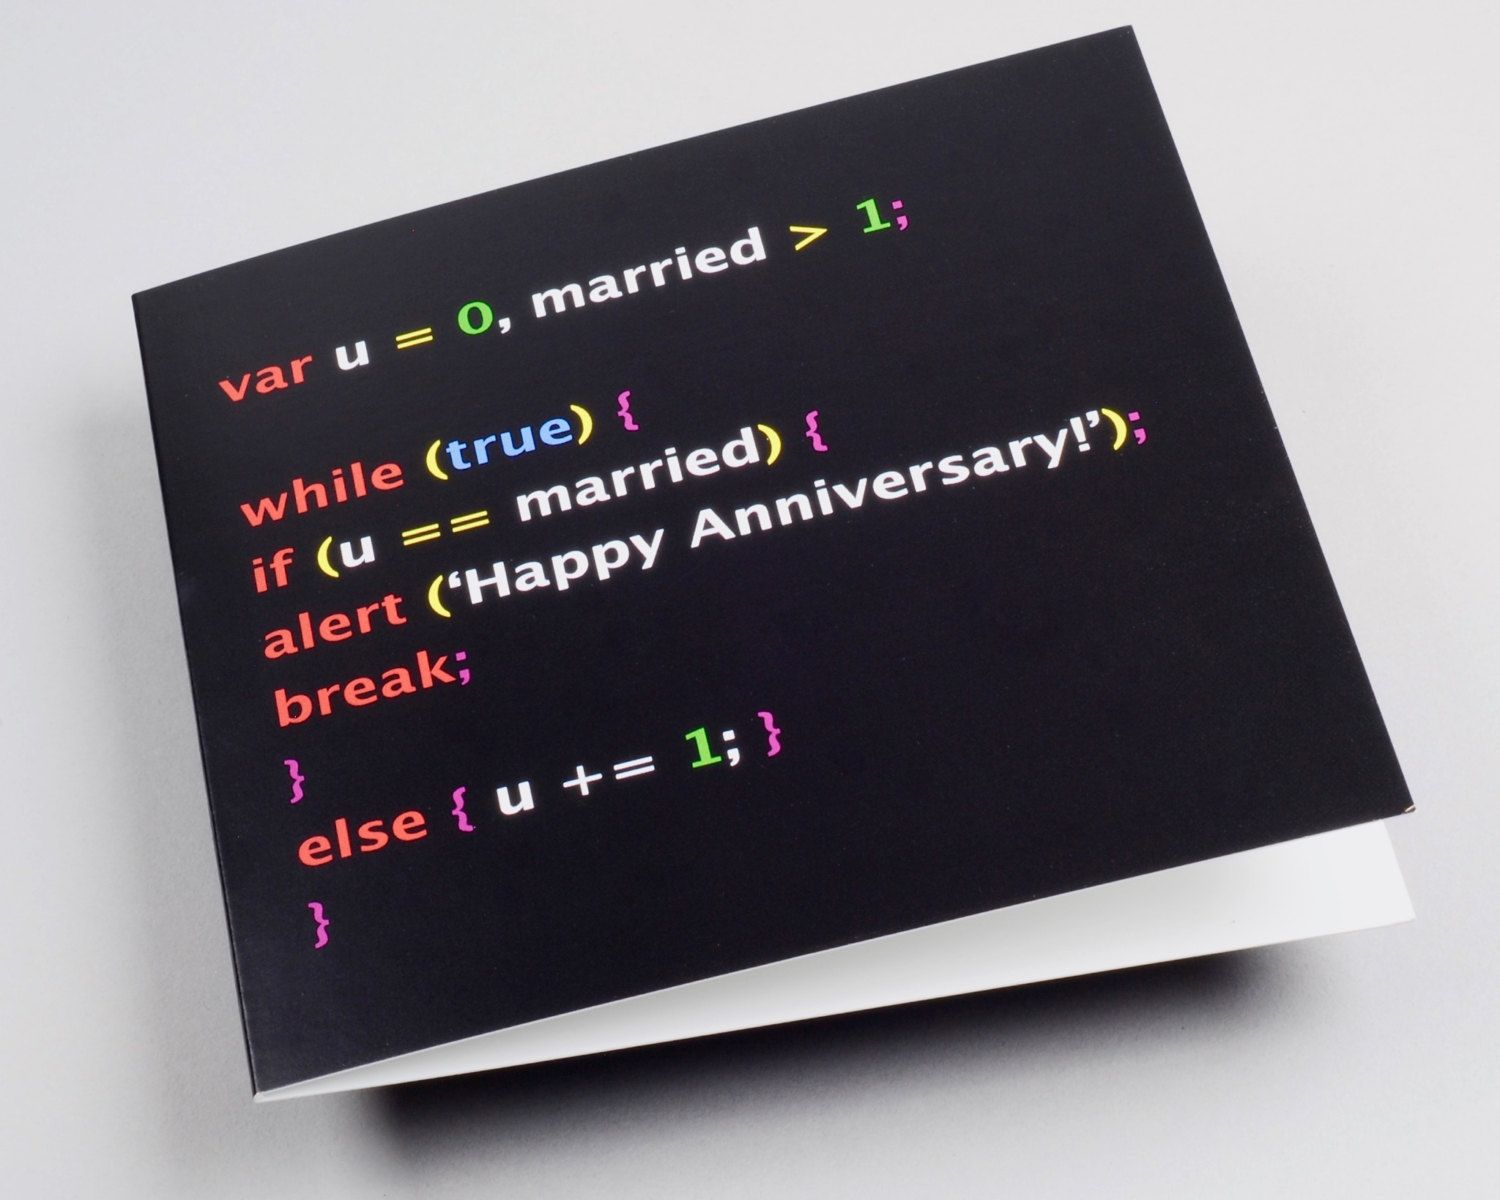 free printable0th wedding anniversary invitations%0A anniversary card  geek anniversary  geek couple  javascript  developer   software  computer